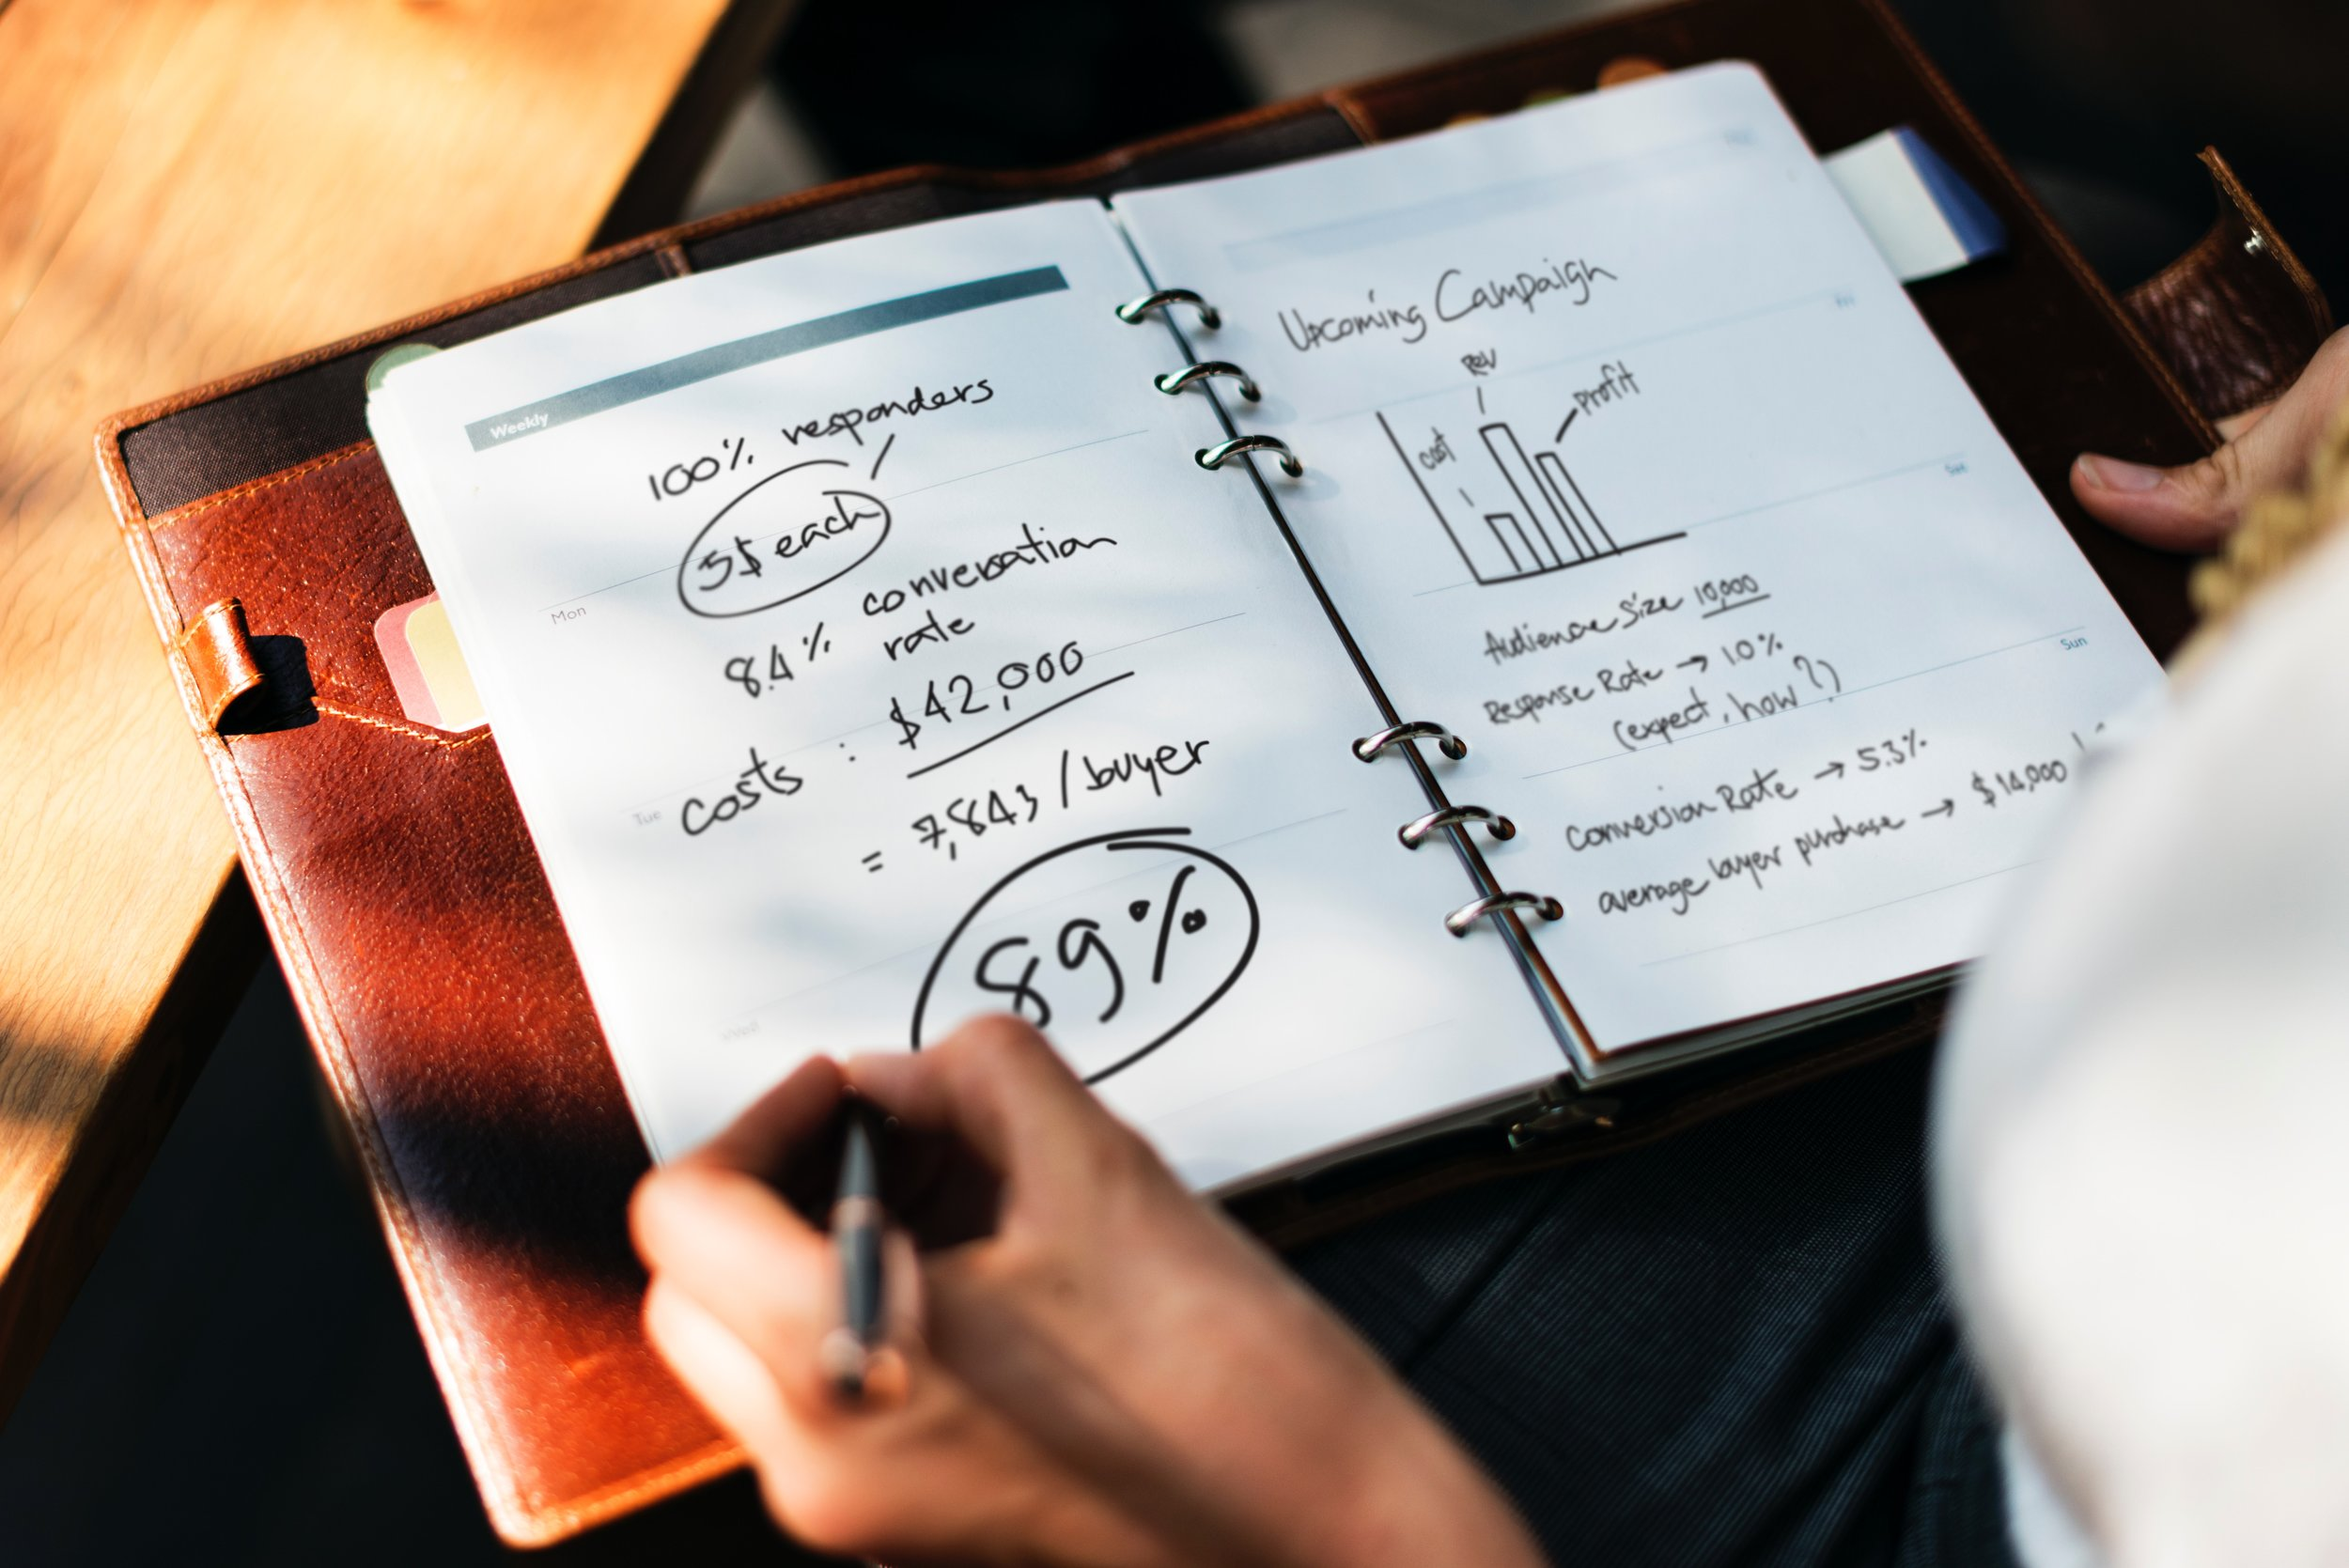 Why use paper when you can dashboard it? - Using leading data managment platforms